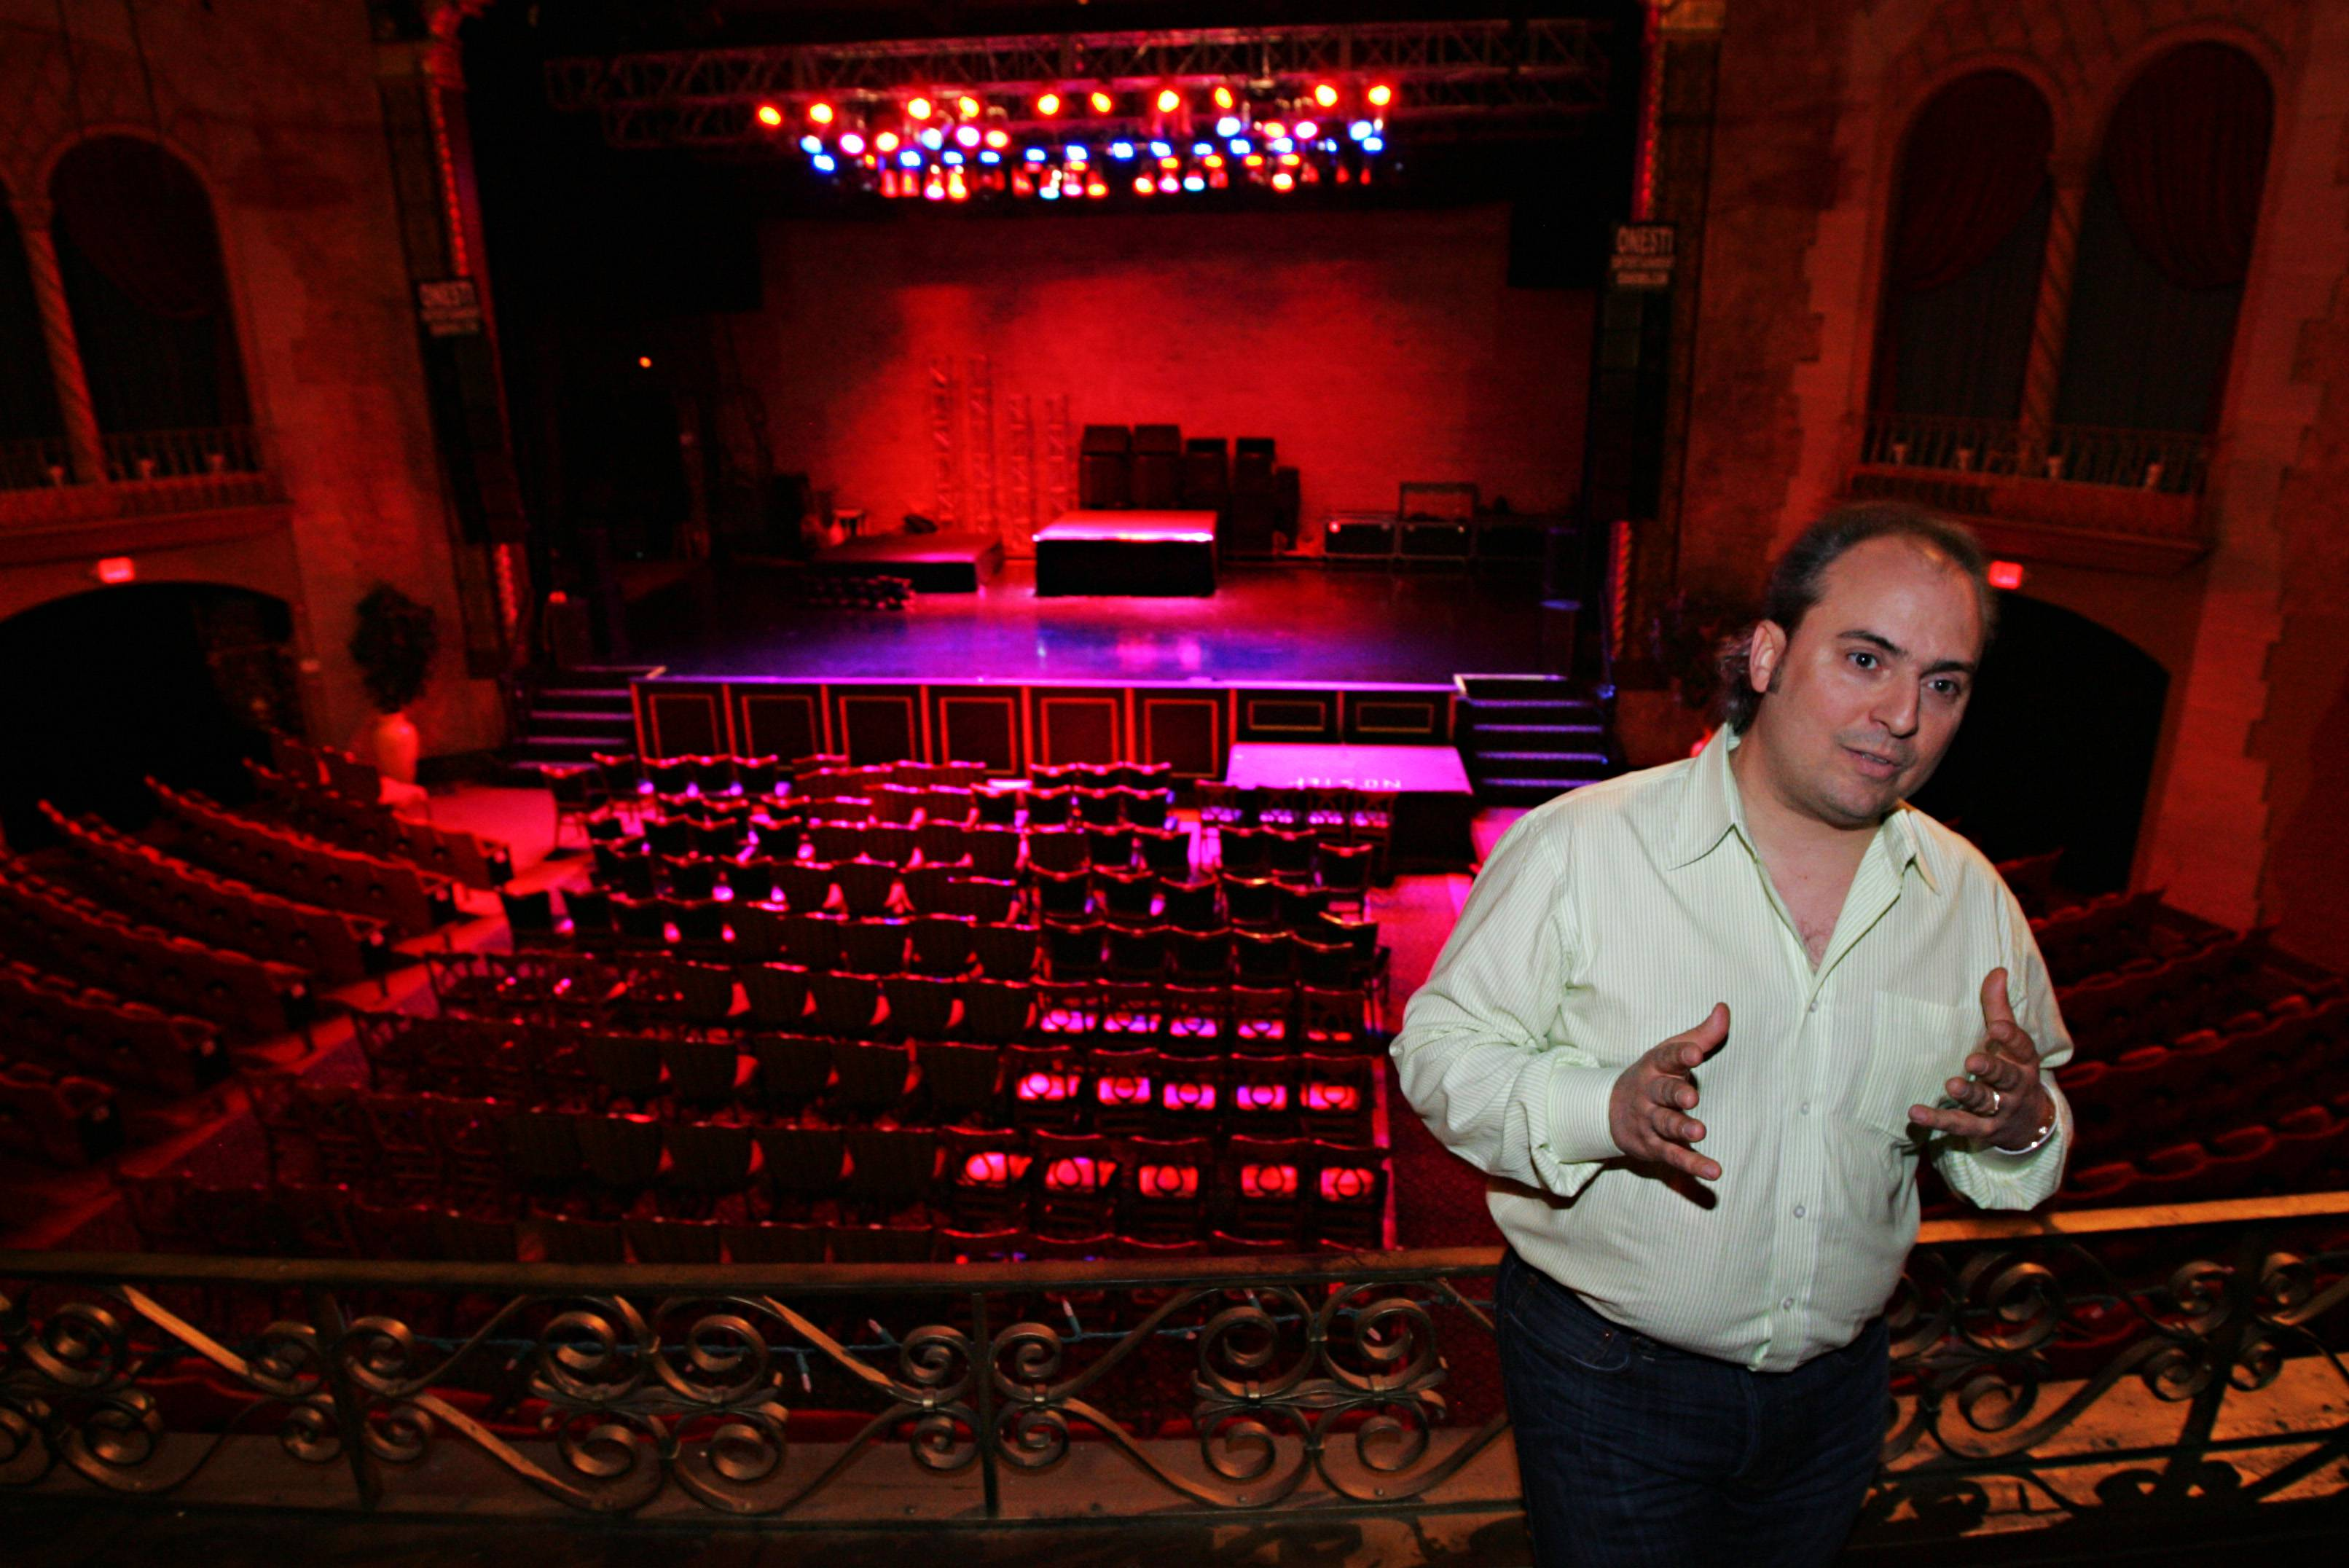 Christopher Hankins/chankins@dailyherald.com ¬ Arcada Theater owner Ron Onesti has been able to consistently bring top acts to the venue, despite it's location in the far-western suburbs.